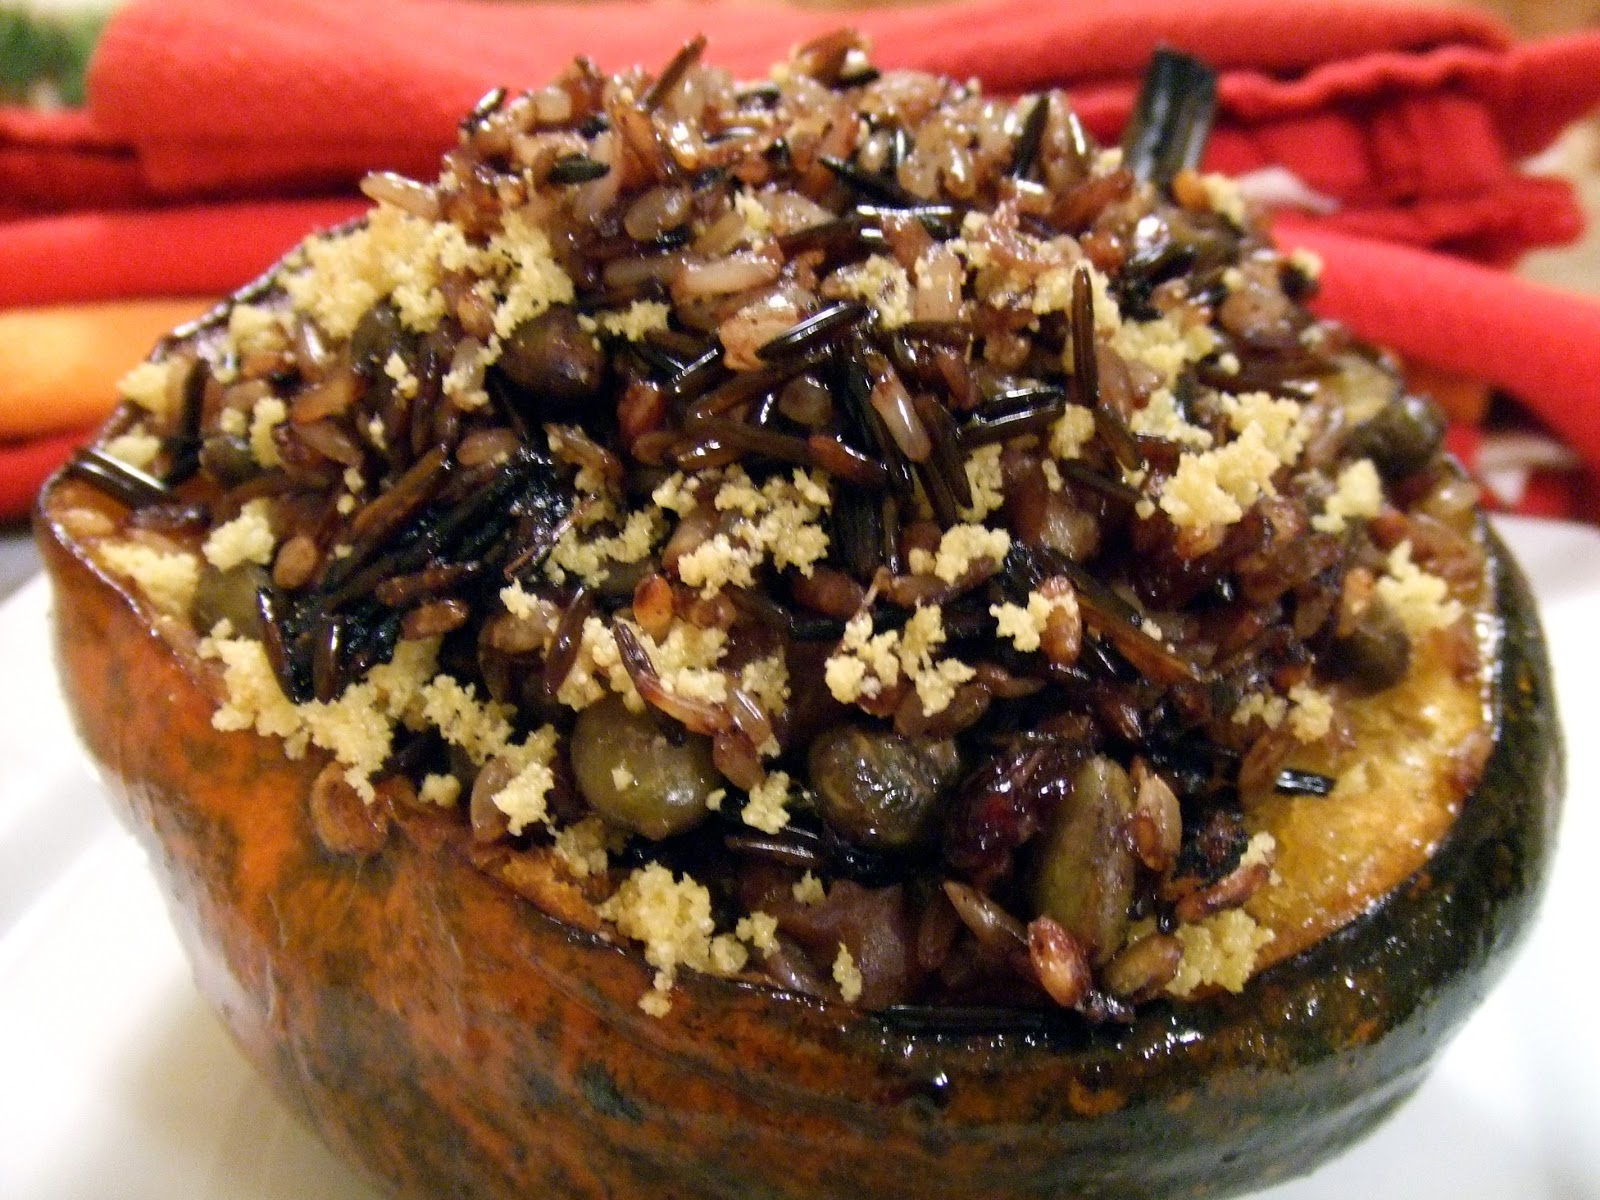 Baked Acorn Squash Stuffed with Wild Rice, Edamame, Walnuts and ...